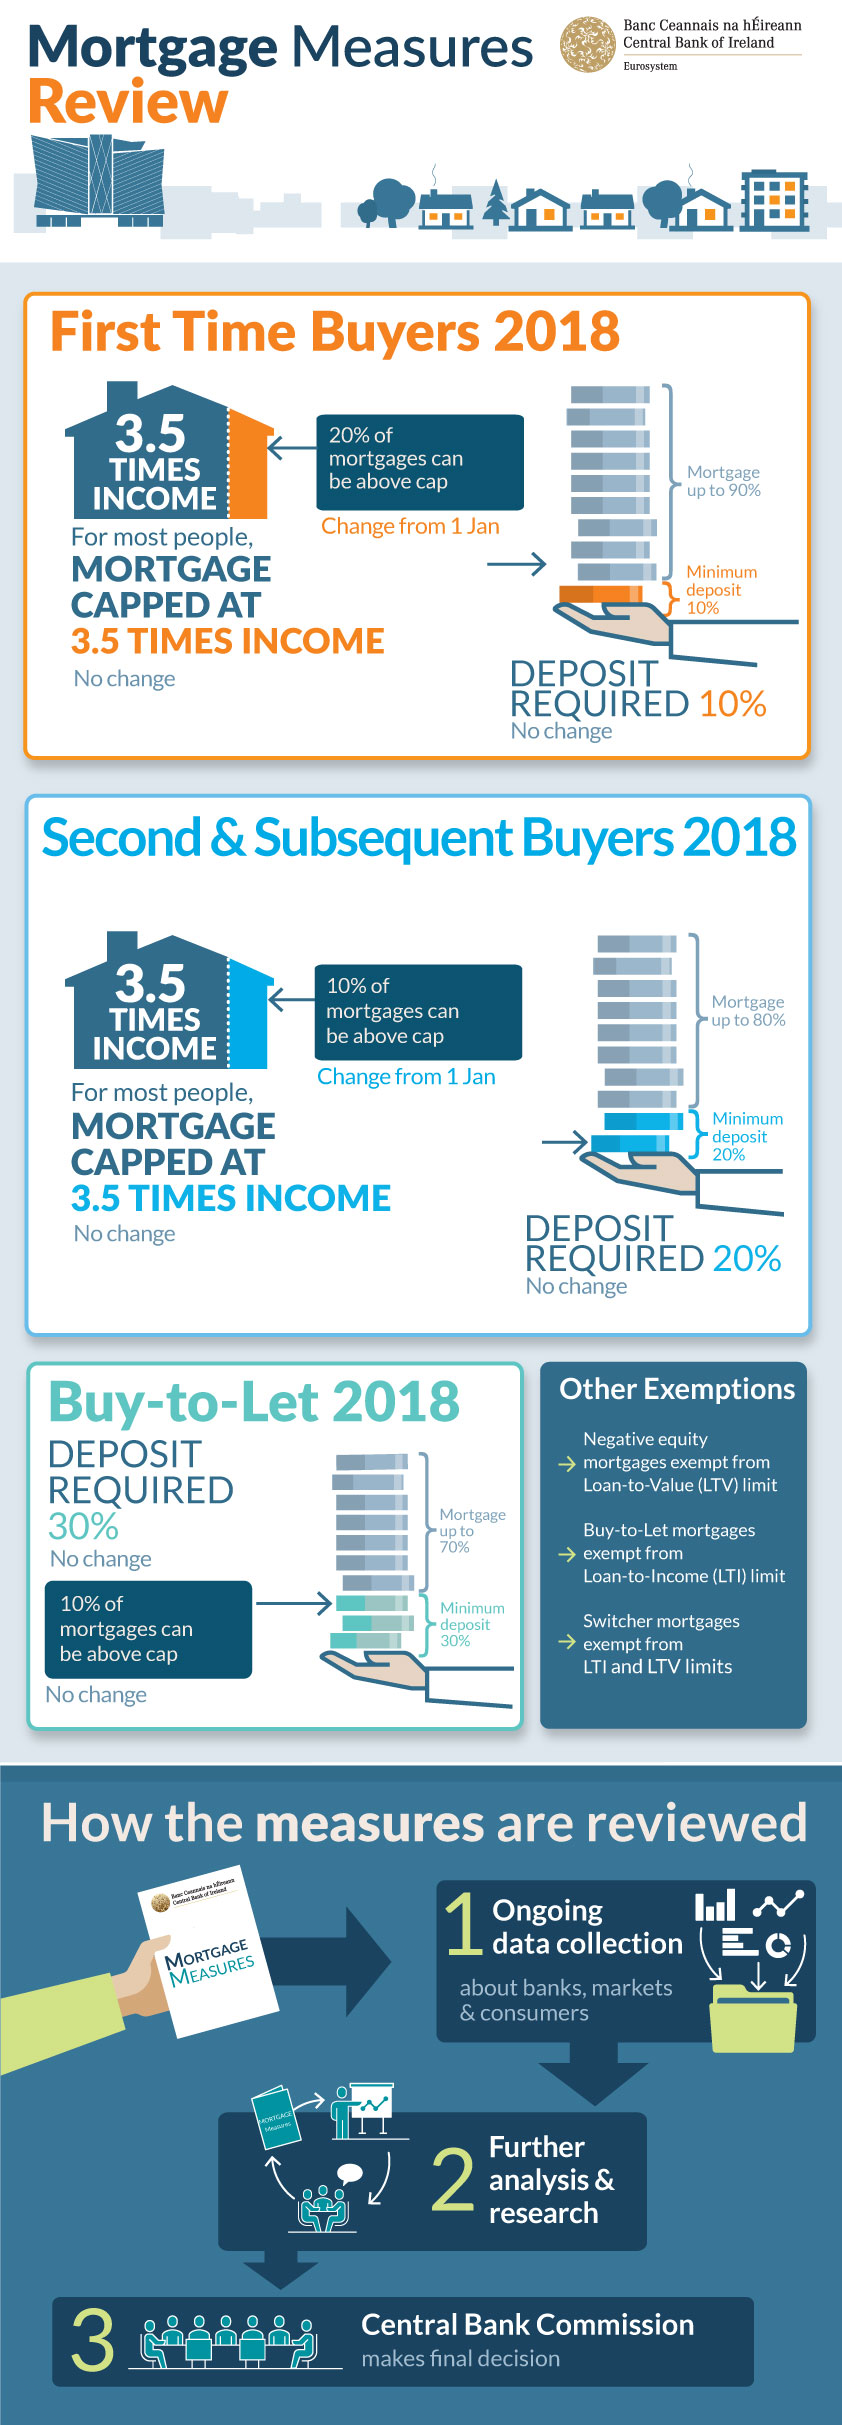 Mortgage Measure Review